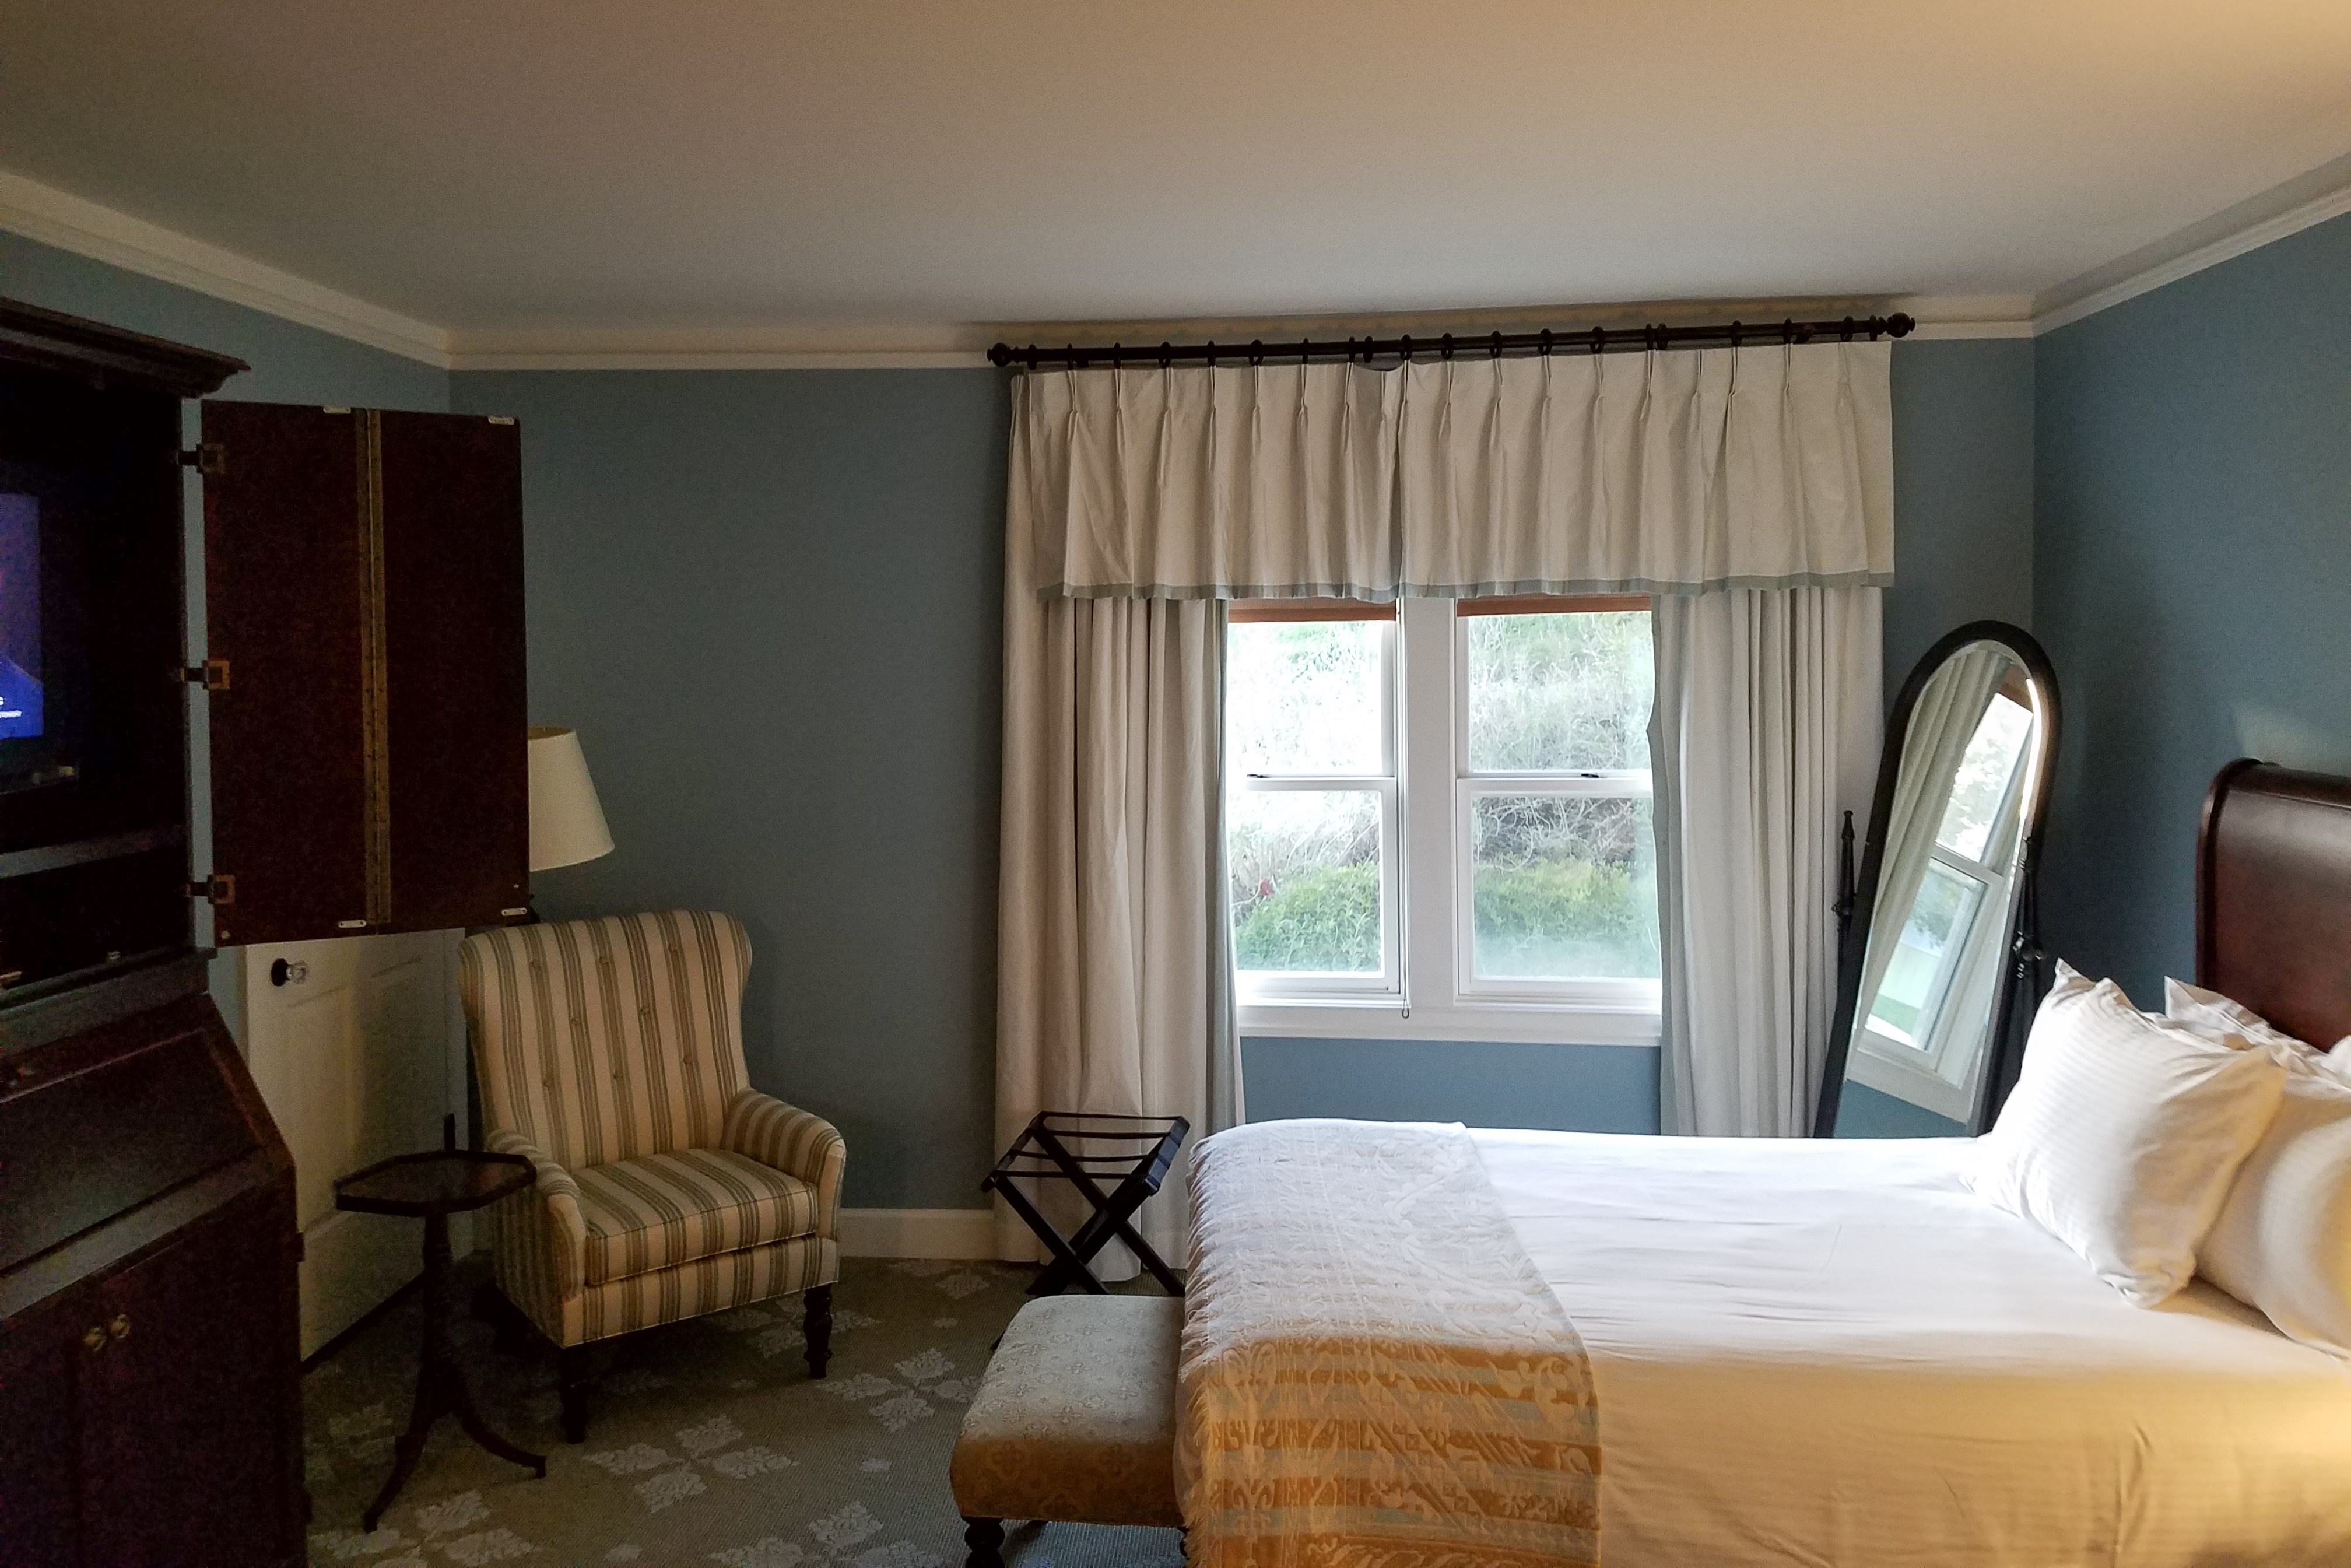 A nicely furnished room with double beds. The windows have screens in them and open so guests can enjoy the fresh mountain air.